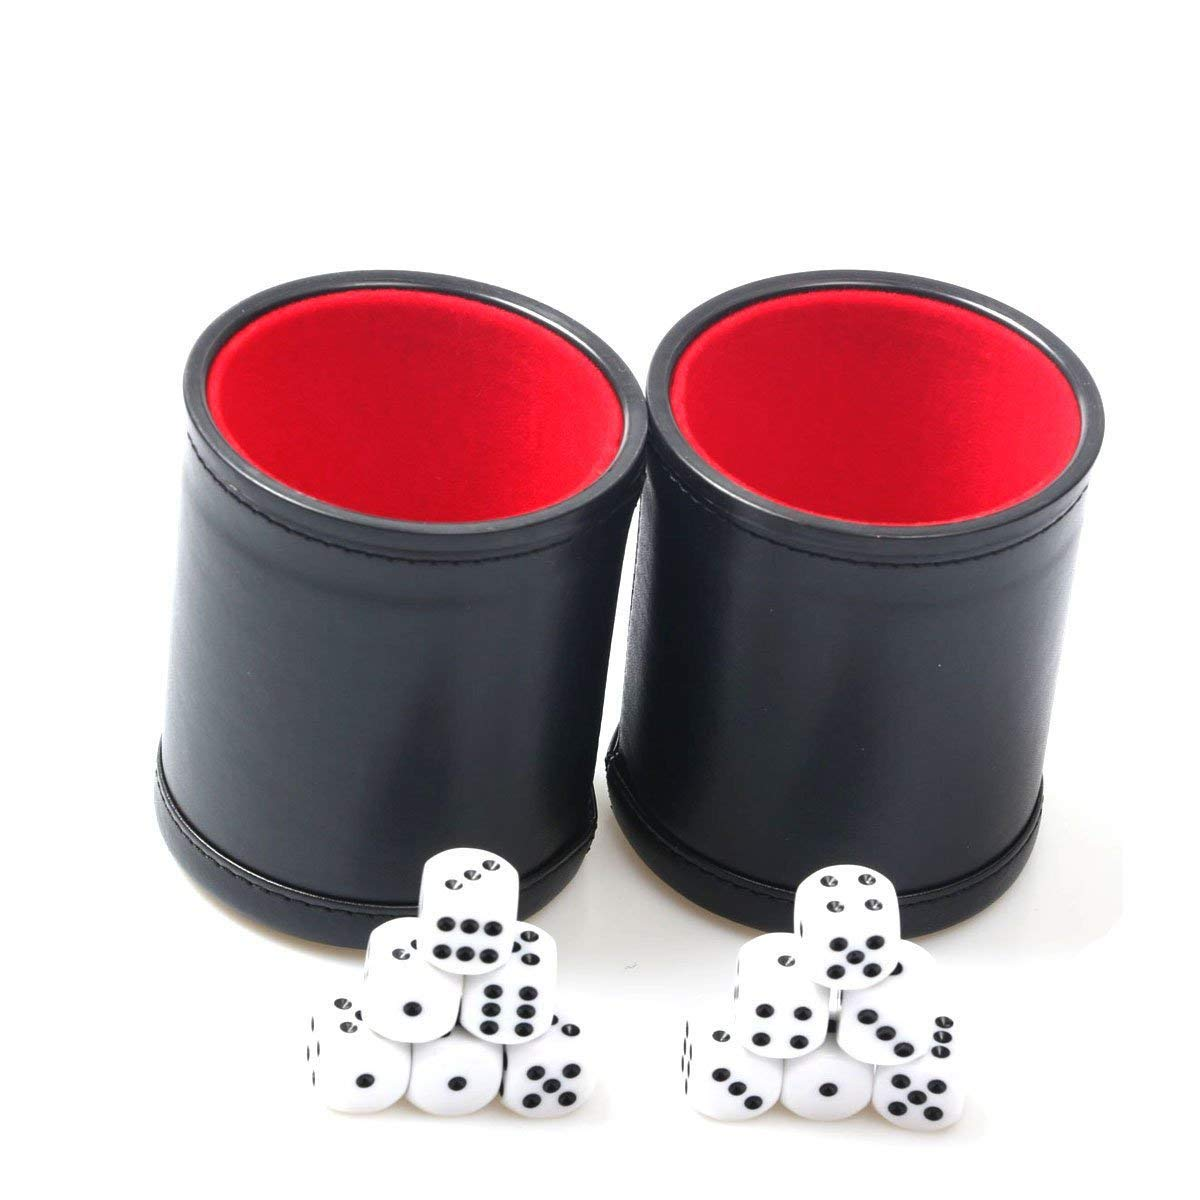 RERIVER Felt Lined PU Leather Dice Cup Set with 6 Dot Dices (Black, Pack of 2) by RERIVER